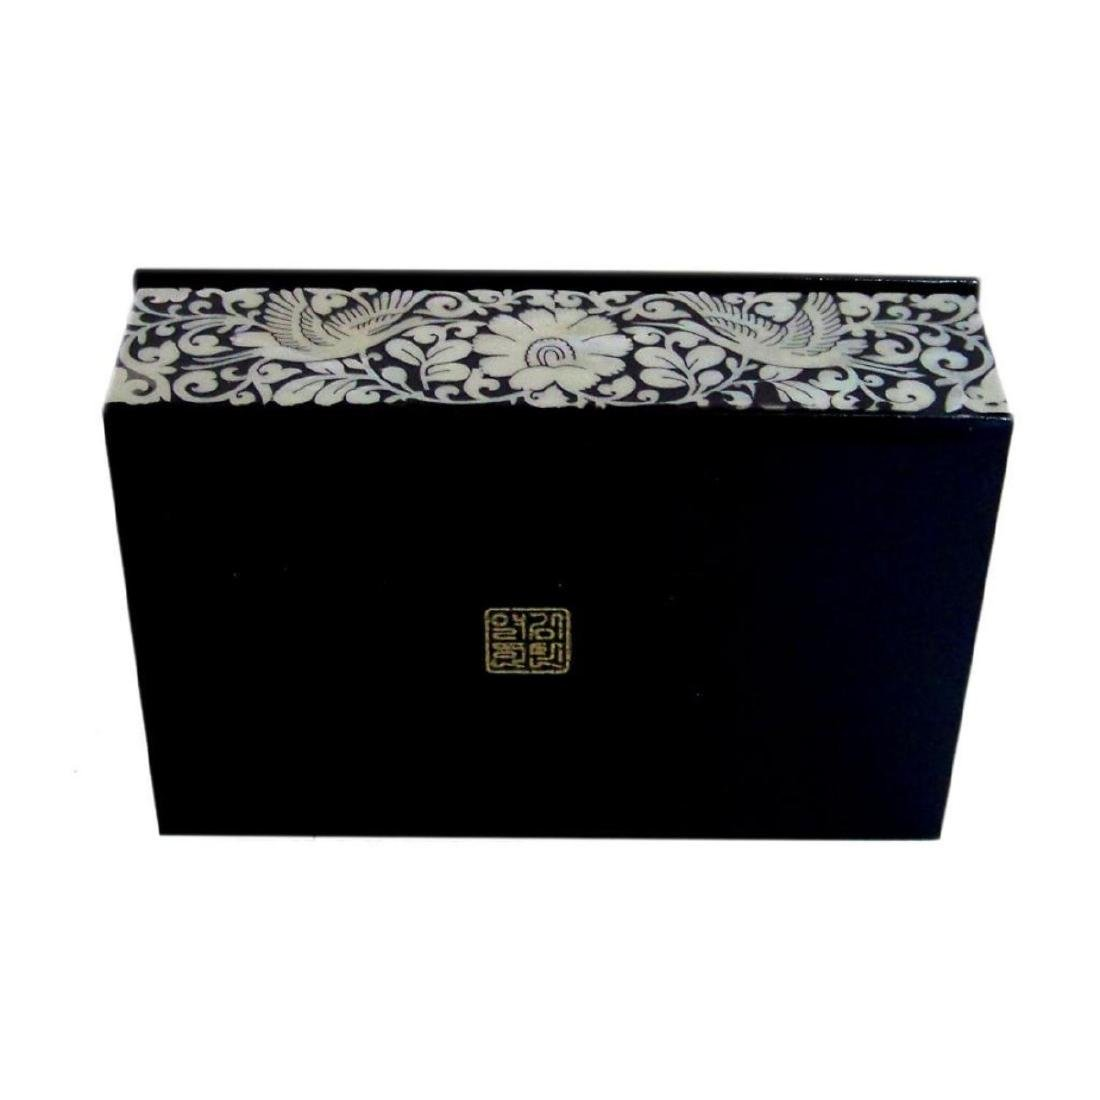 Mother Of Pearl Inlaid Box_ Lacquer Ware Inlaid - 4